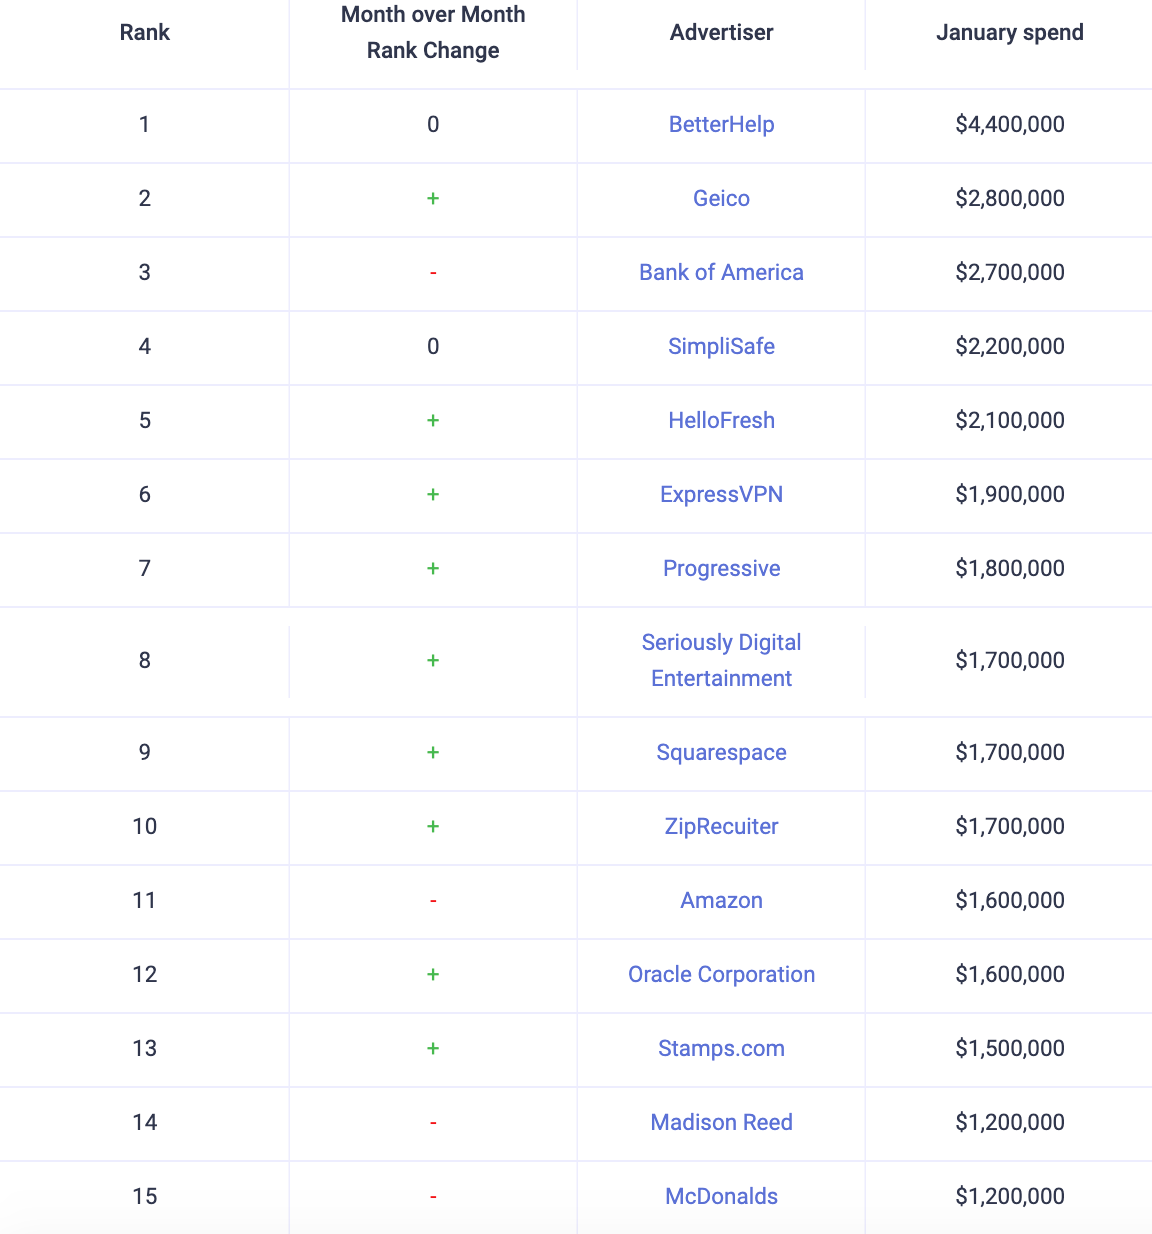 Top 15 companies who spent the most on podcast advertising in January 2021